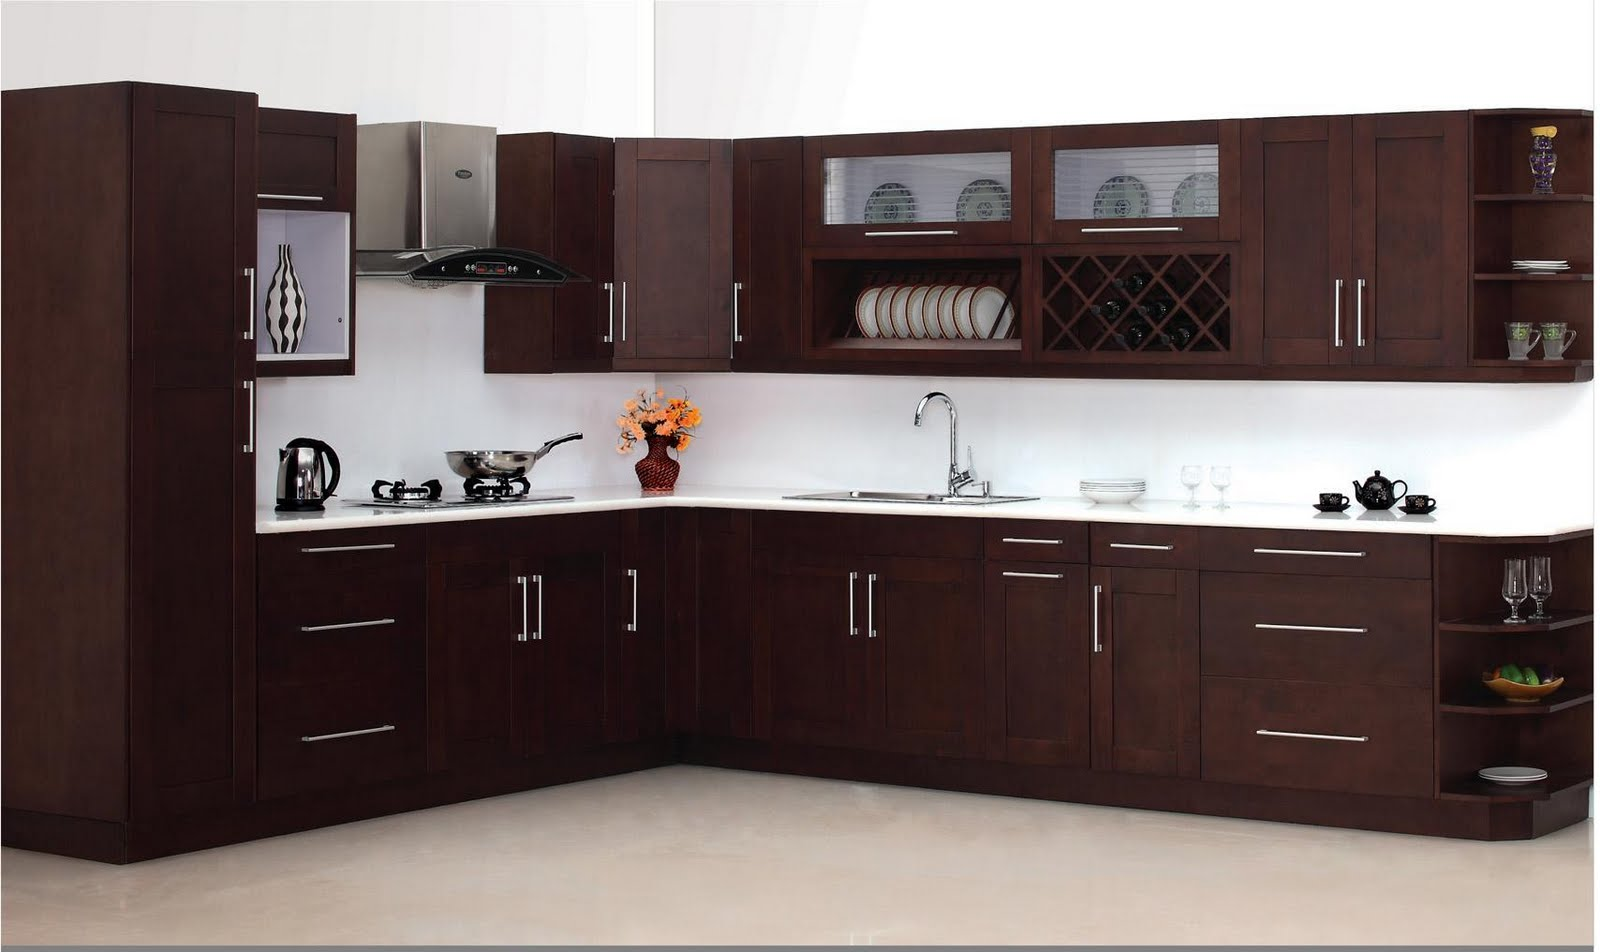 Espresso shaker kitchen cabinets images for Shaker cabinets